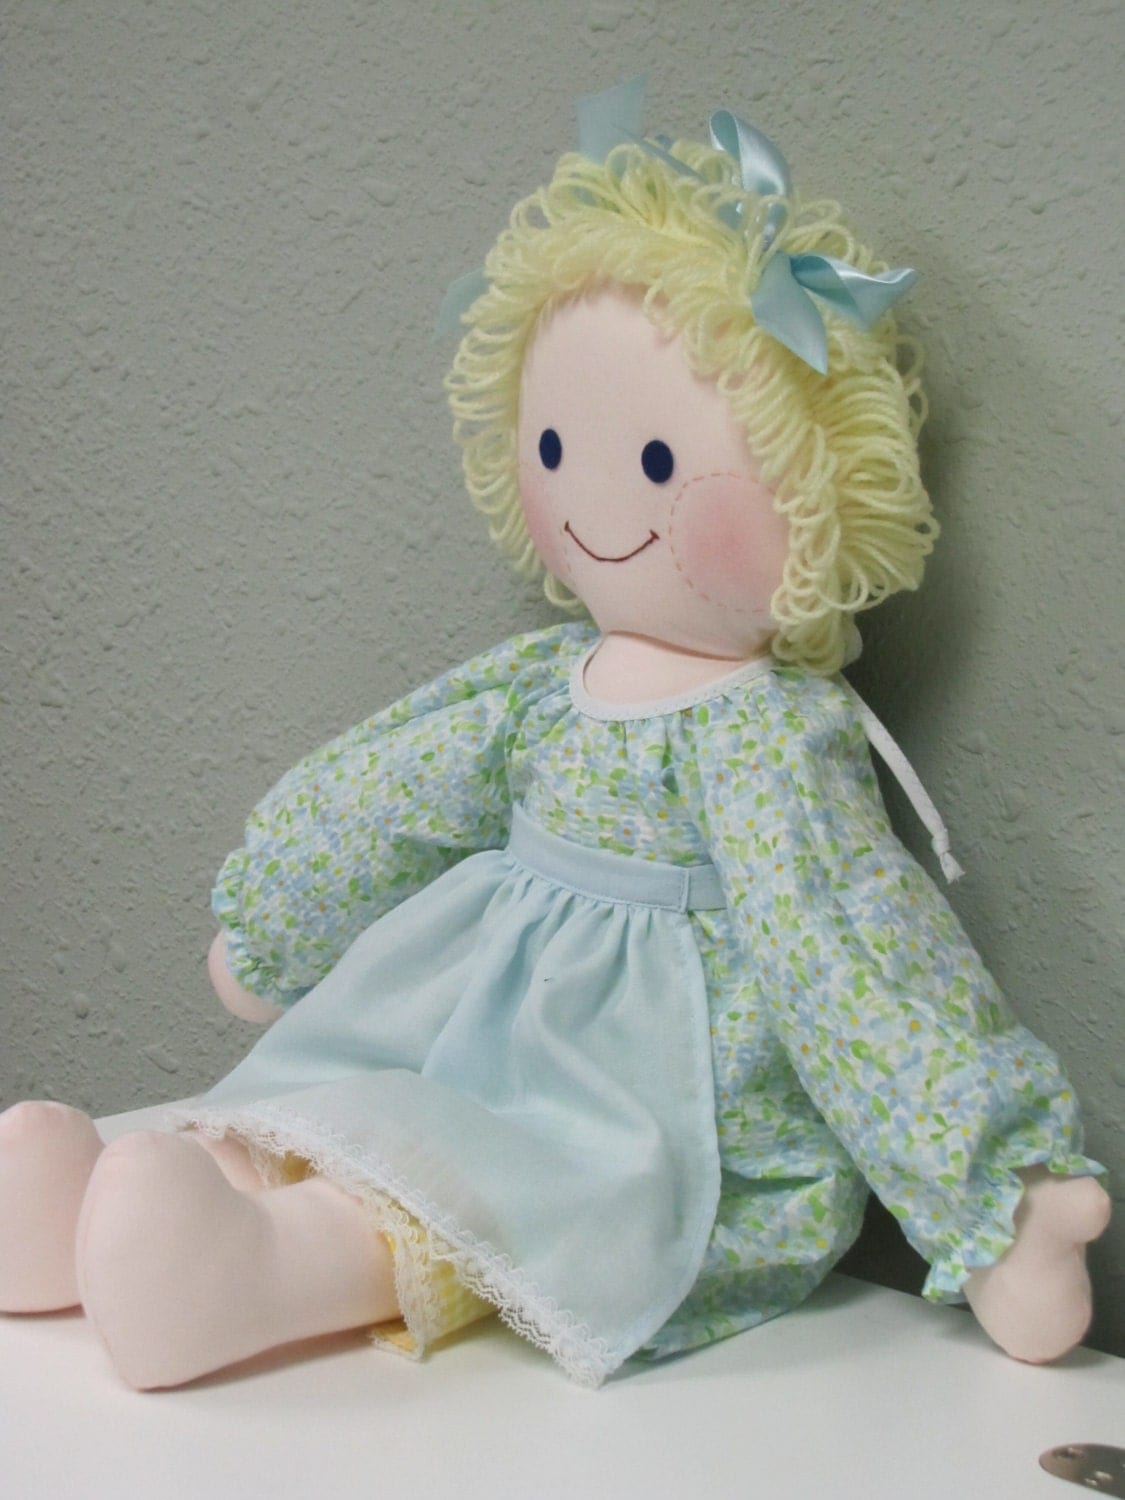 Rag Doll With Blond Yarn Hair And Blue Eyes Comes With